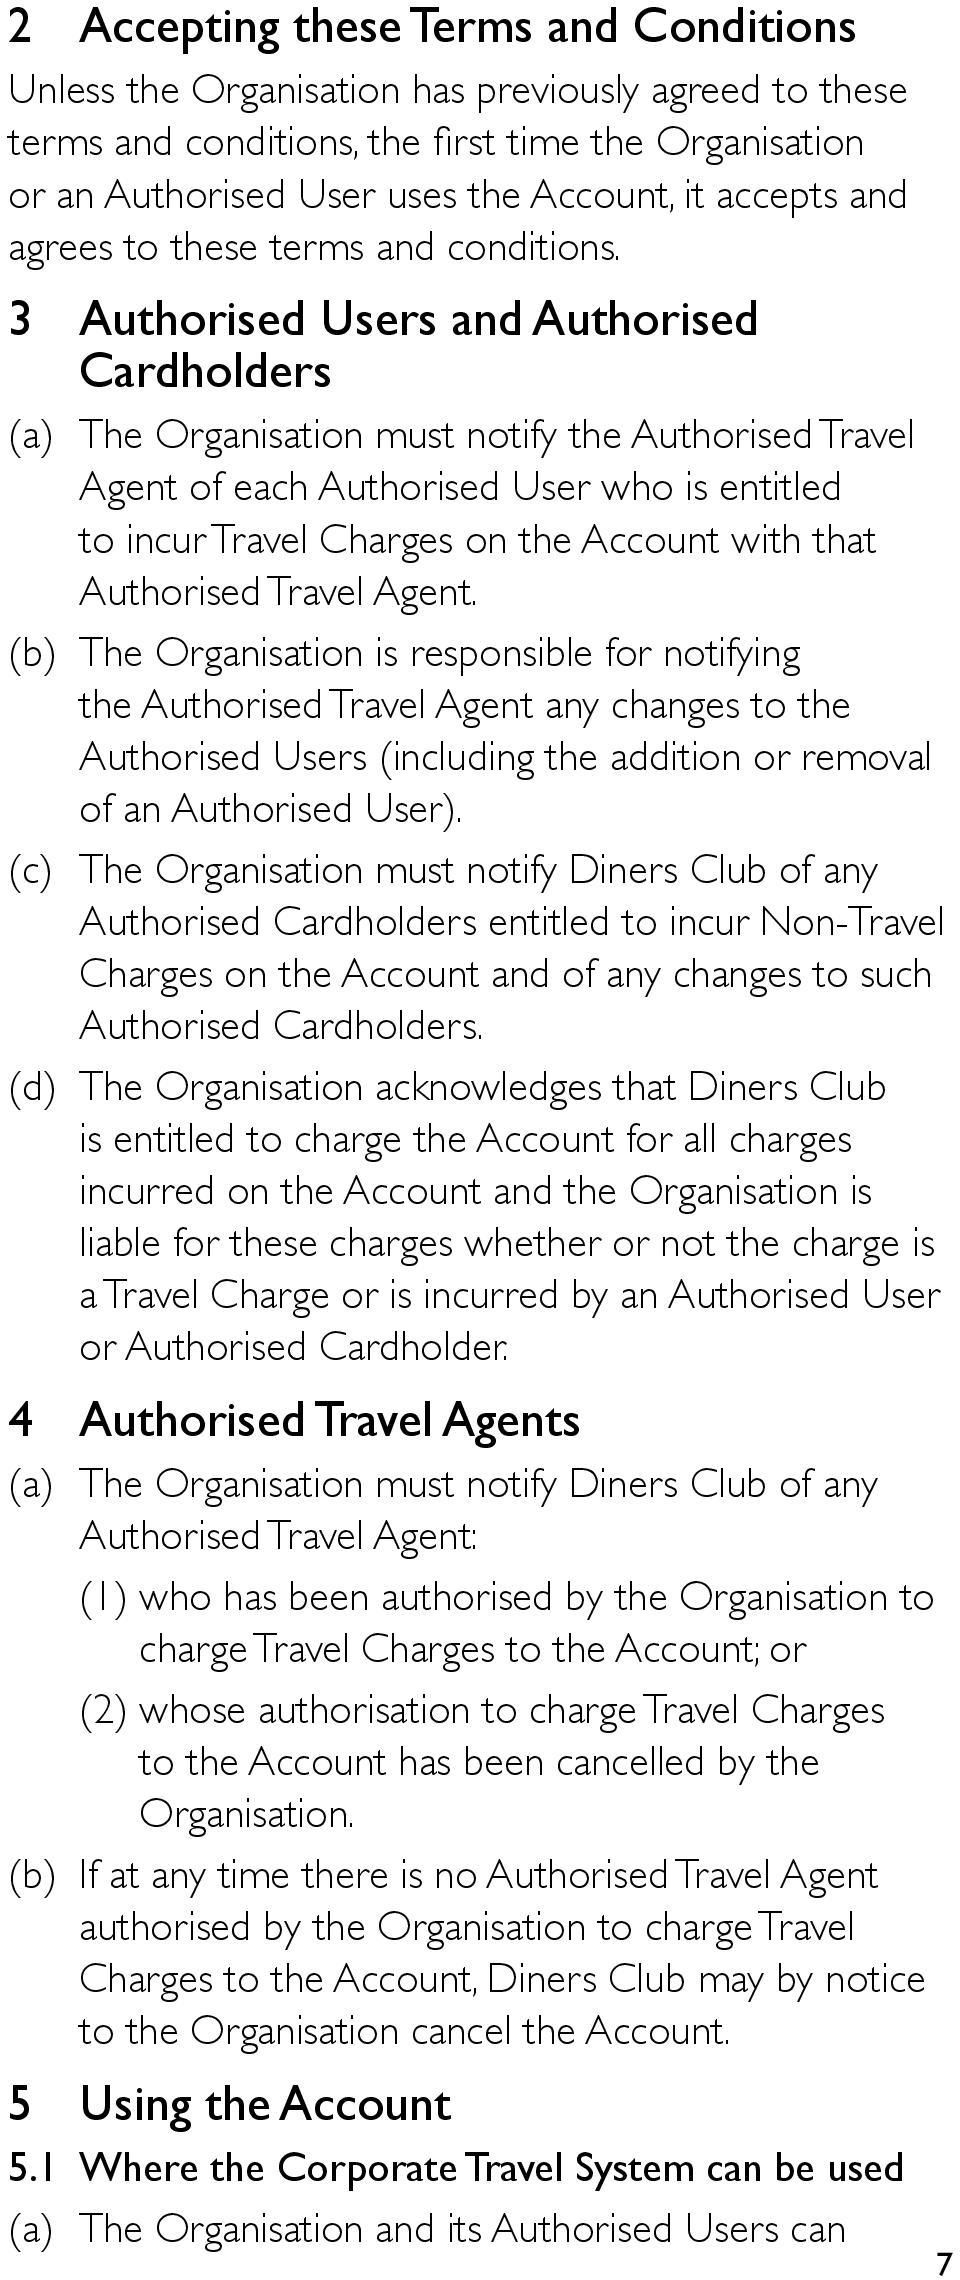 3 Authorised Users and Authorised Cardholders (a) The Organisation must notify the Authorised Travel Agent of each Authorised User who is entitled to incur Travel Charges on the Account with that